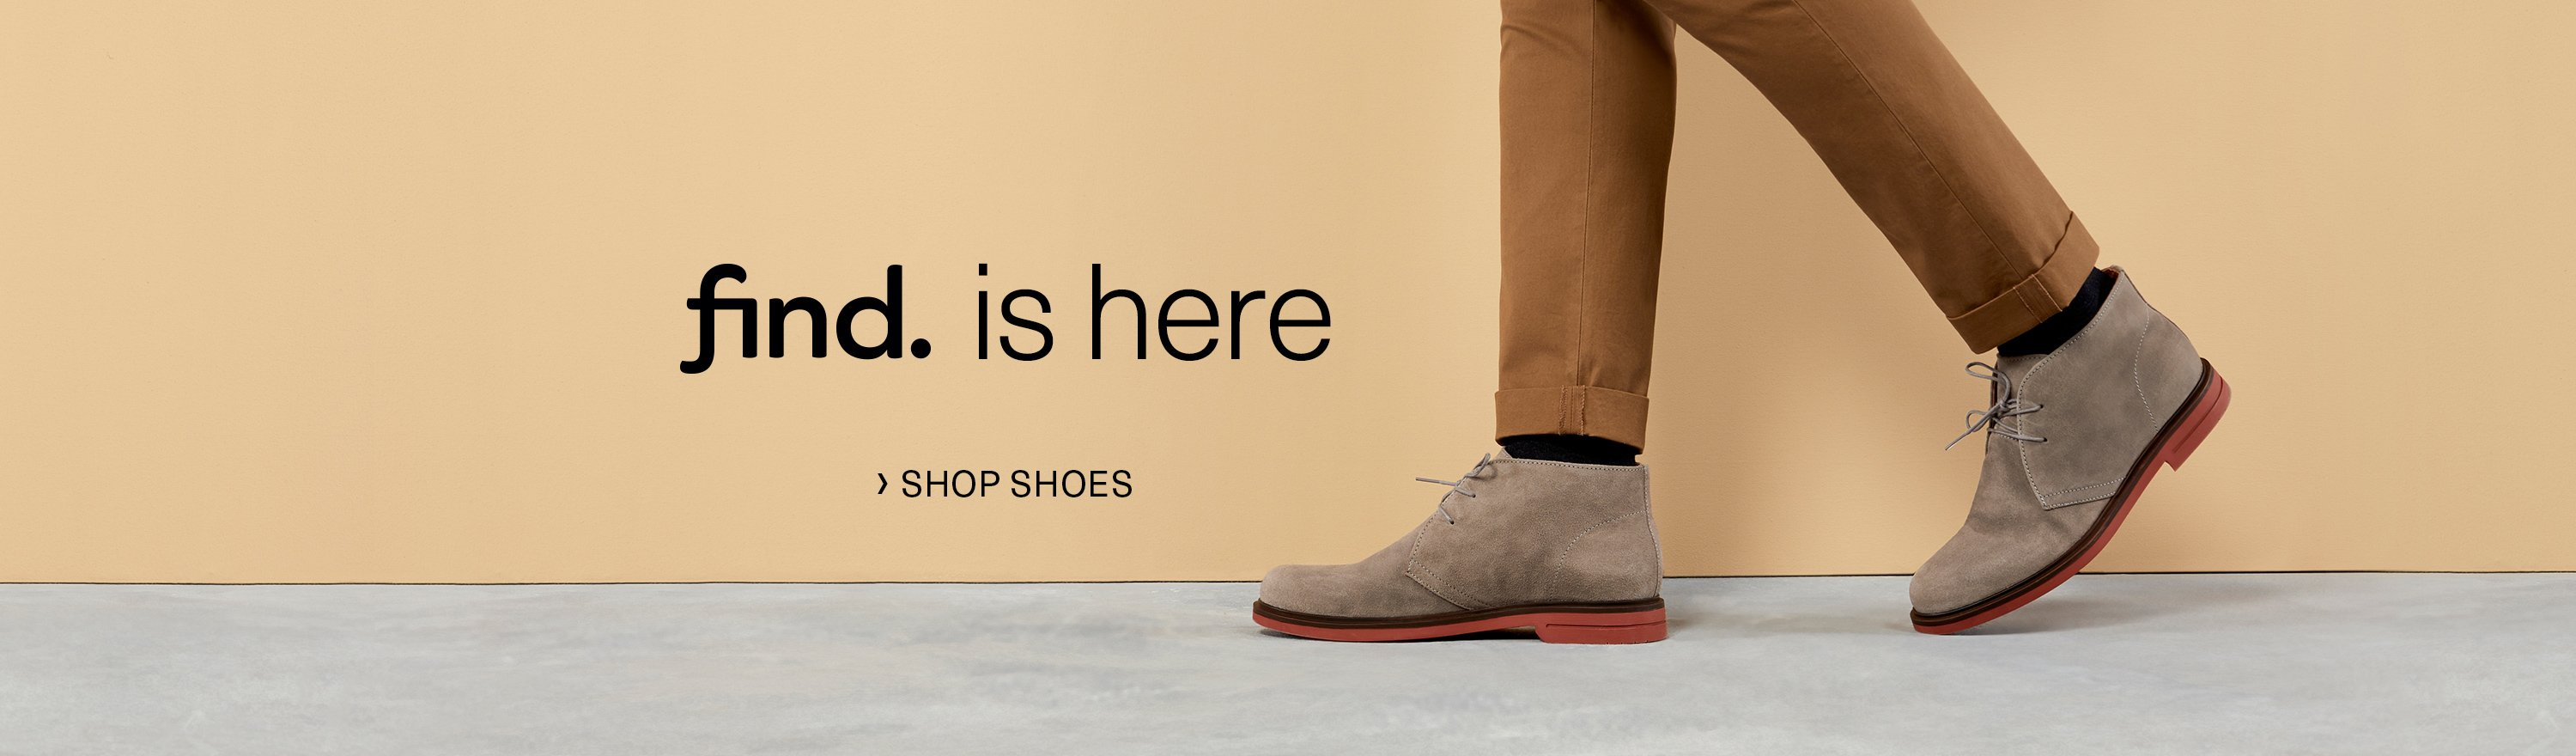 find. is here - Shop shoes